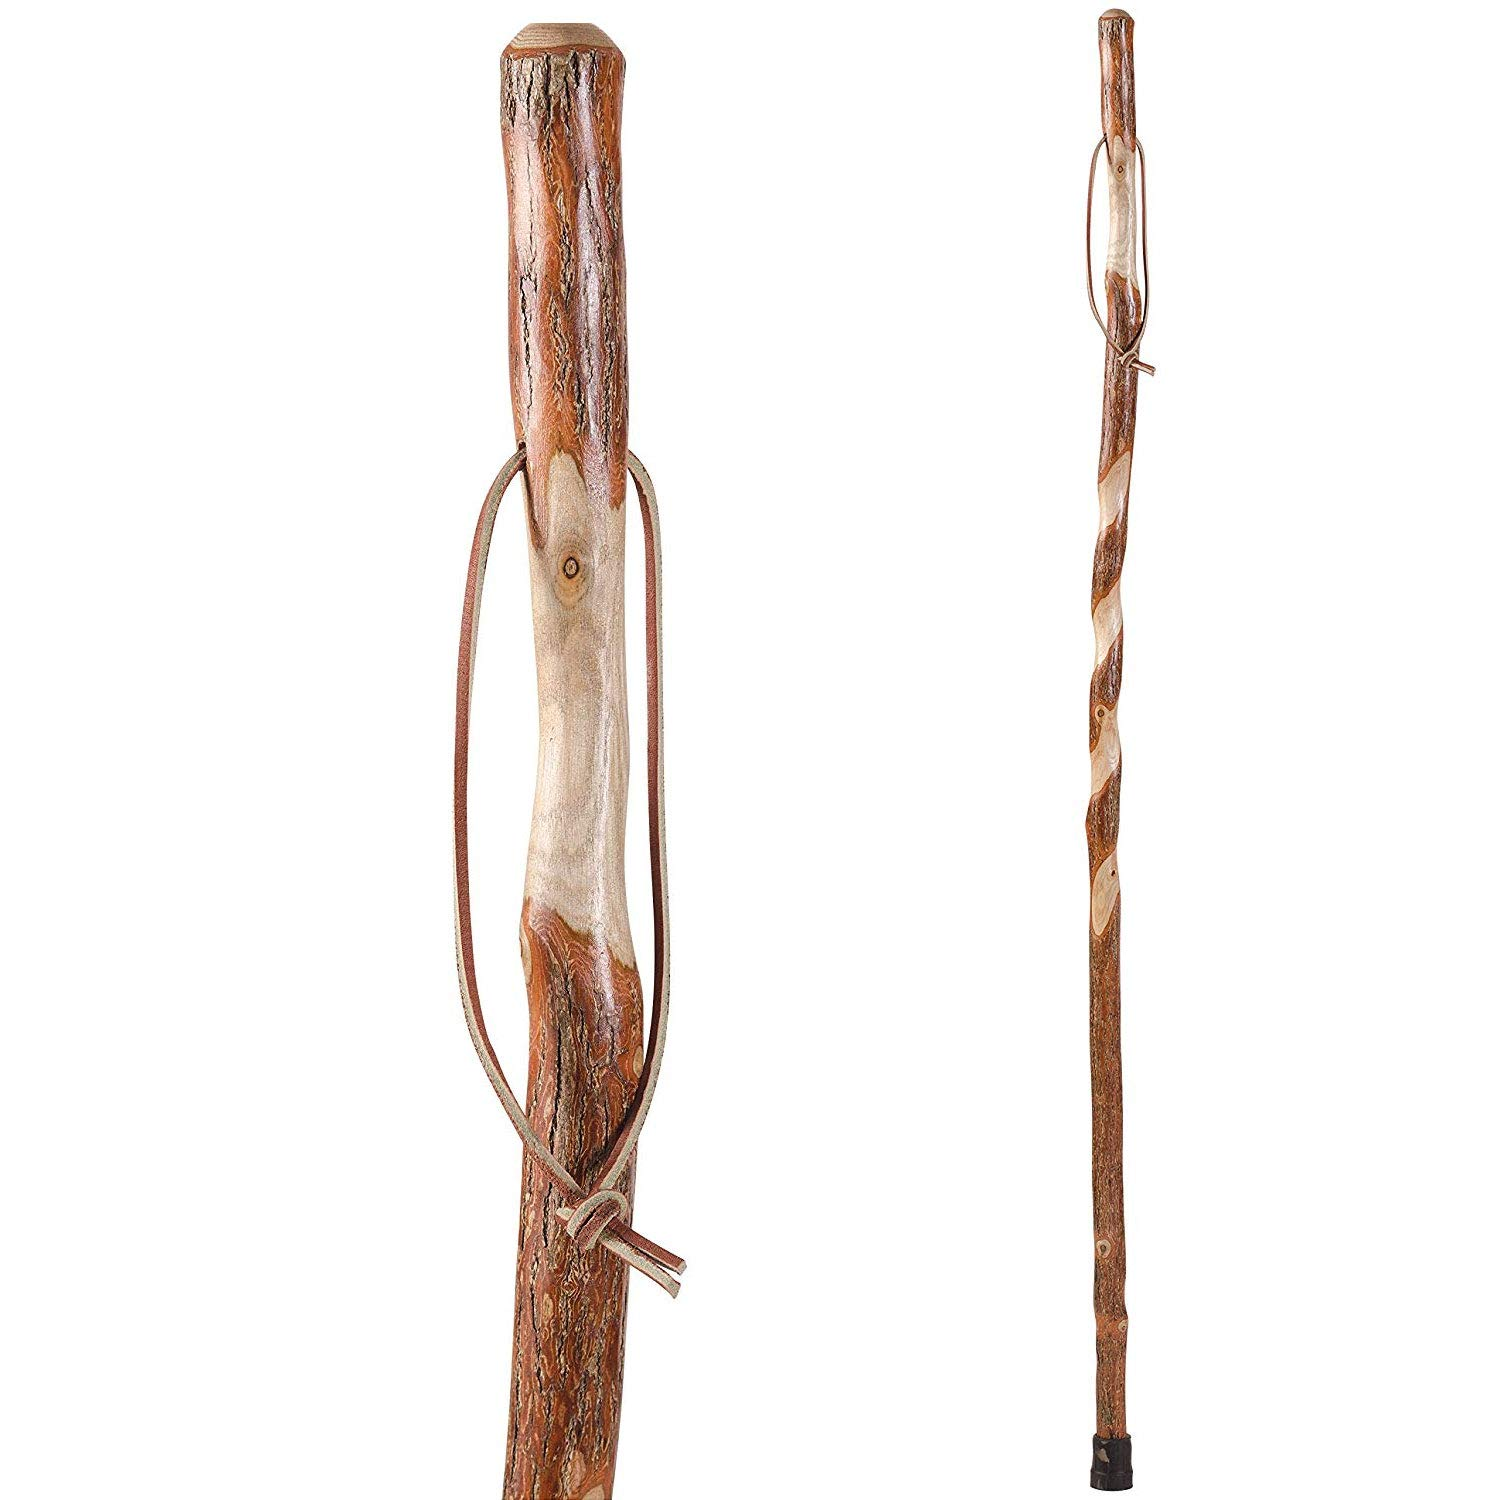 Hiking Walking Trekking Stick - Handcrafted Wooden Walking & Hiking Stick - Made in the USA by Brazos - Twisted Sassafras - 48 inches